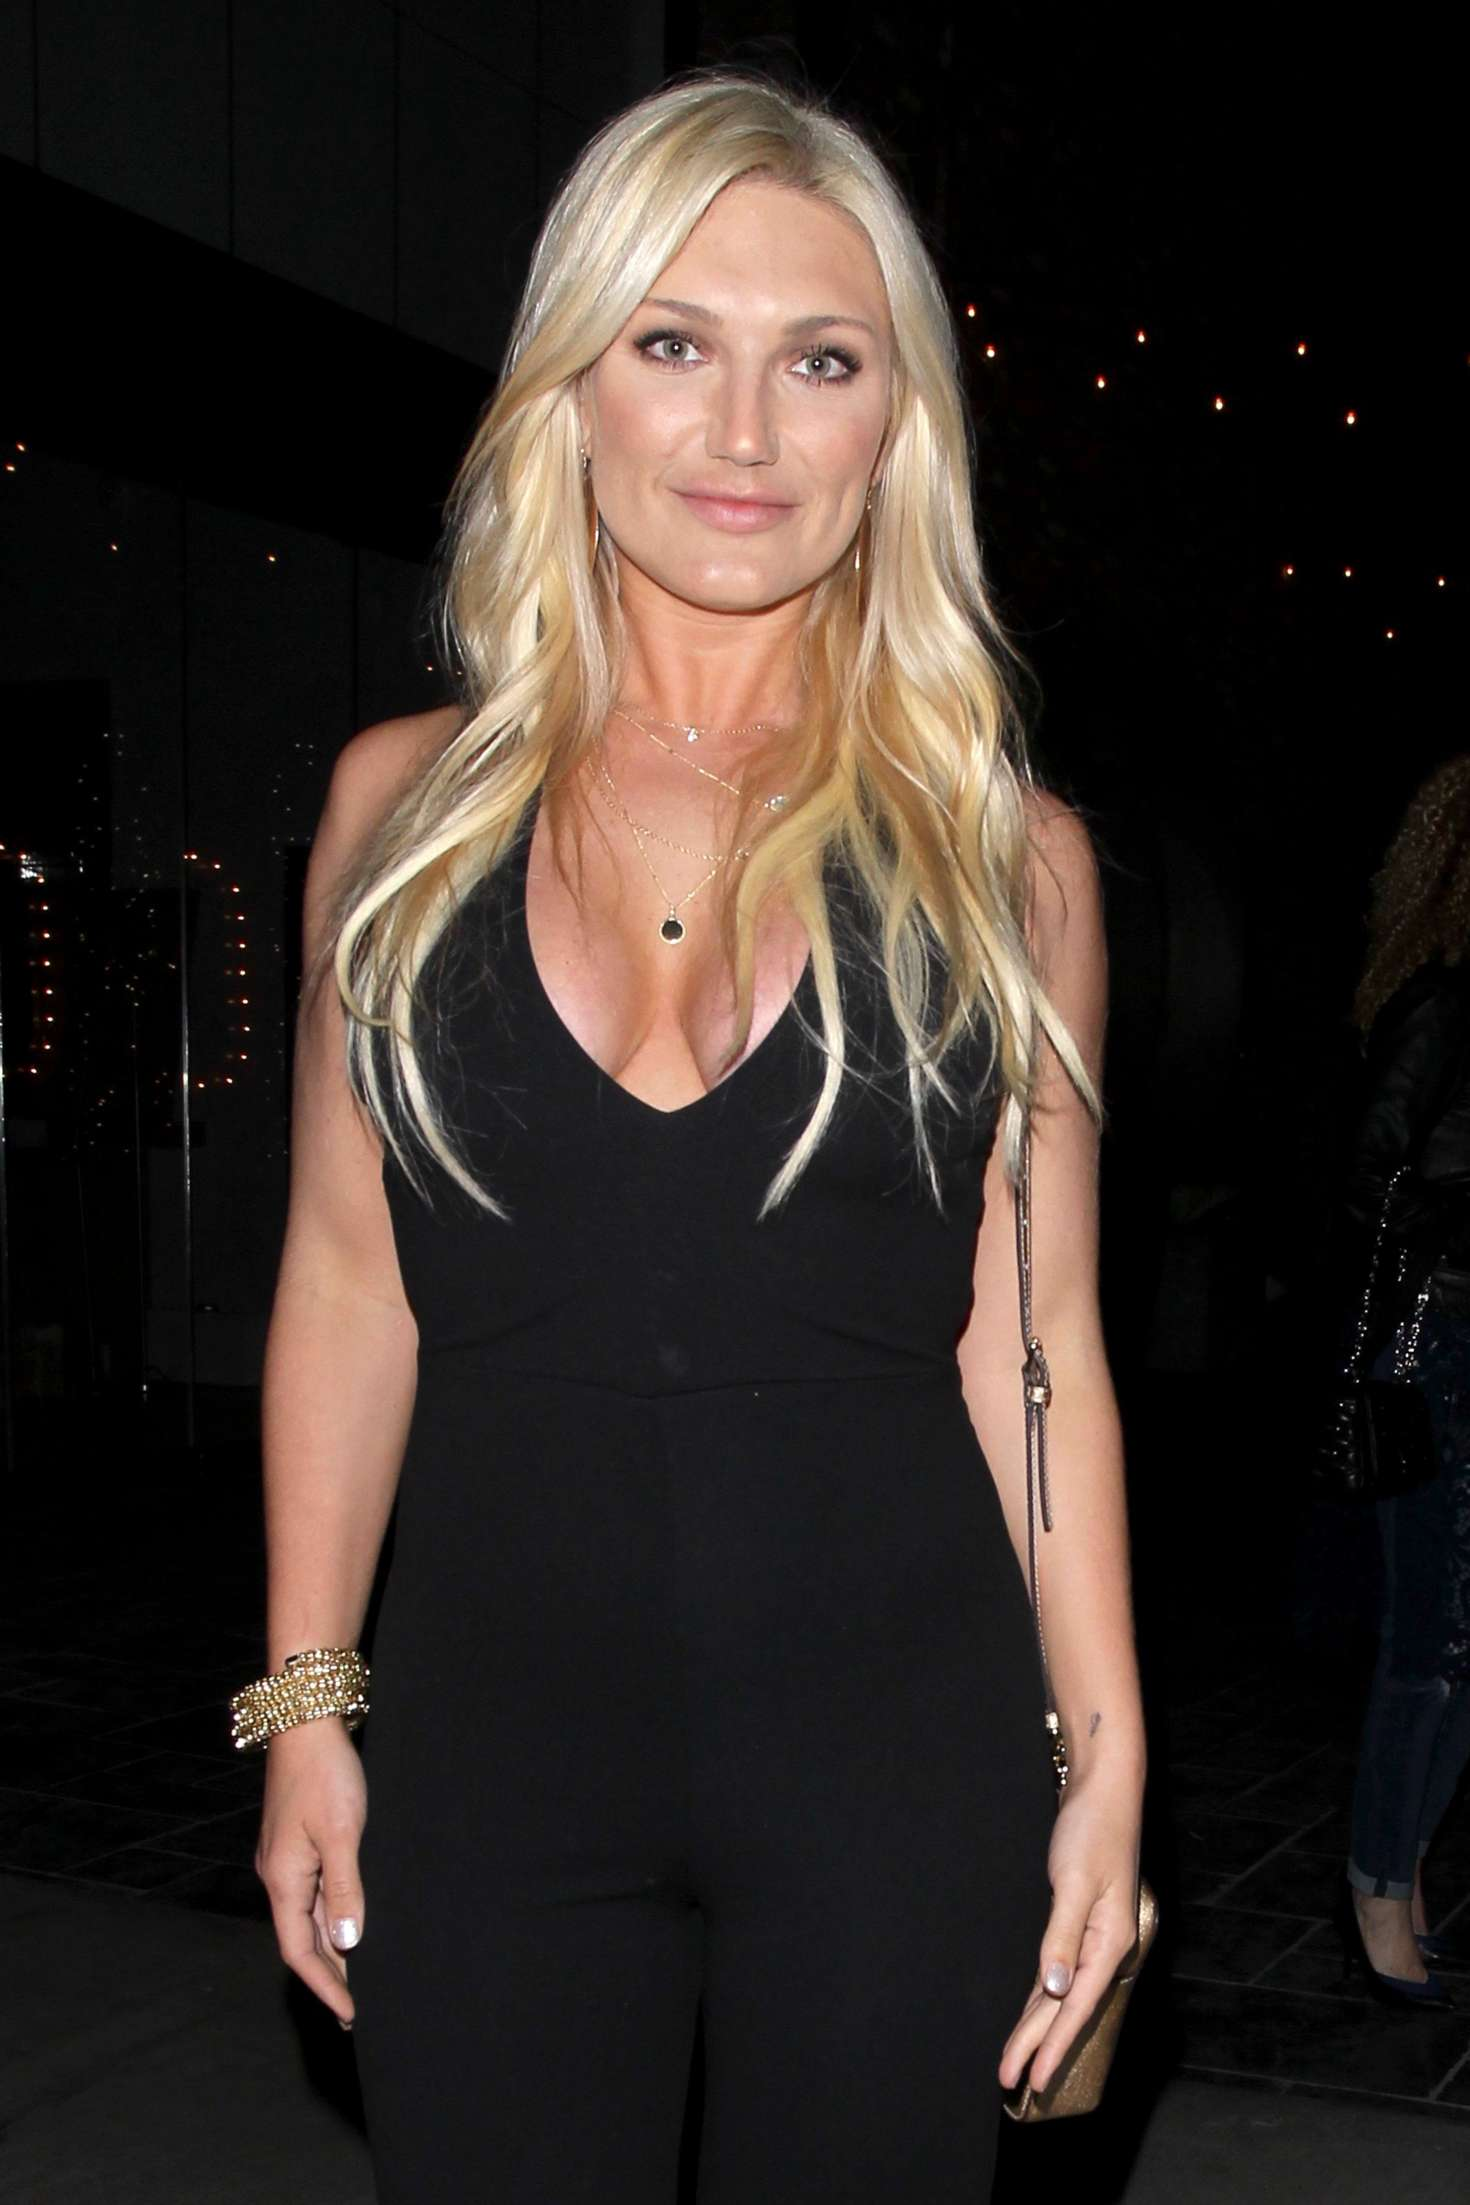 Brooke Hogan at Avenue nightclub in Hollywood